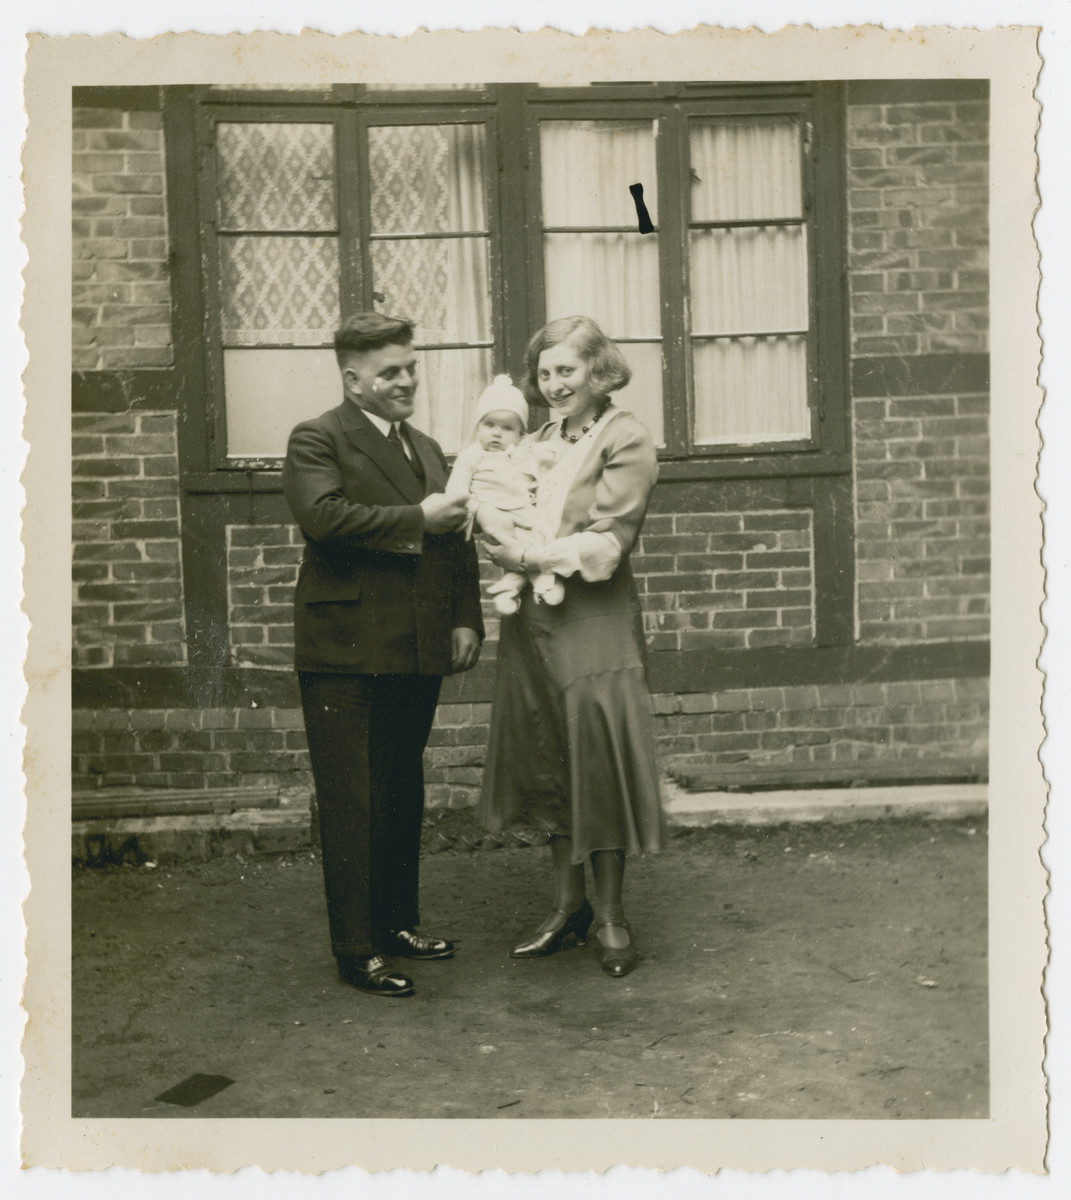 Julius and Else Gutheim stand outside a house with their infant daughter.